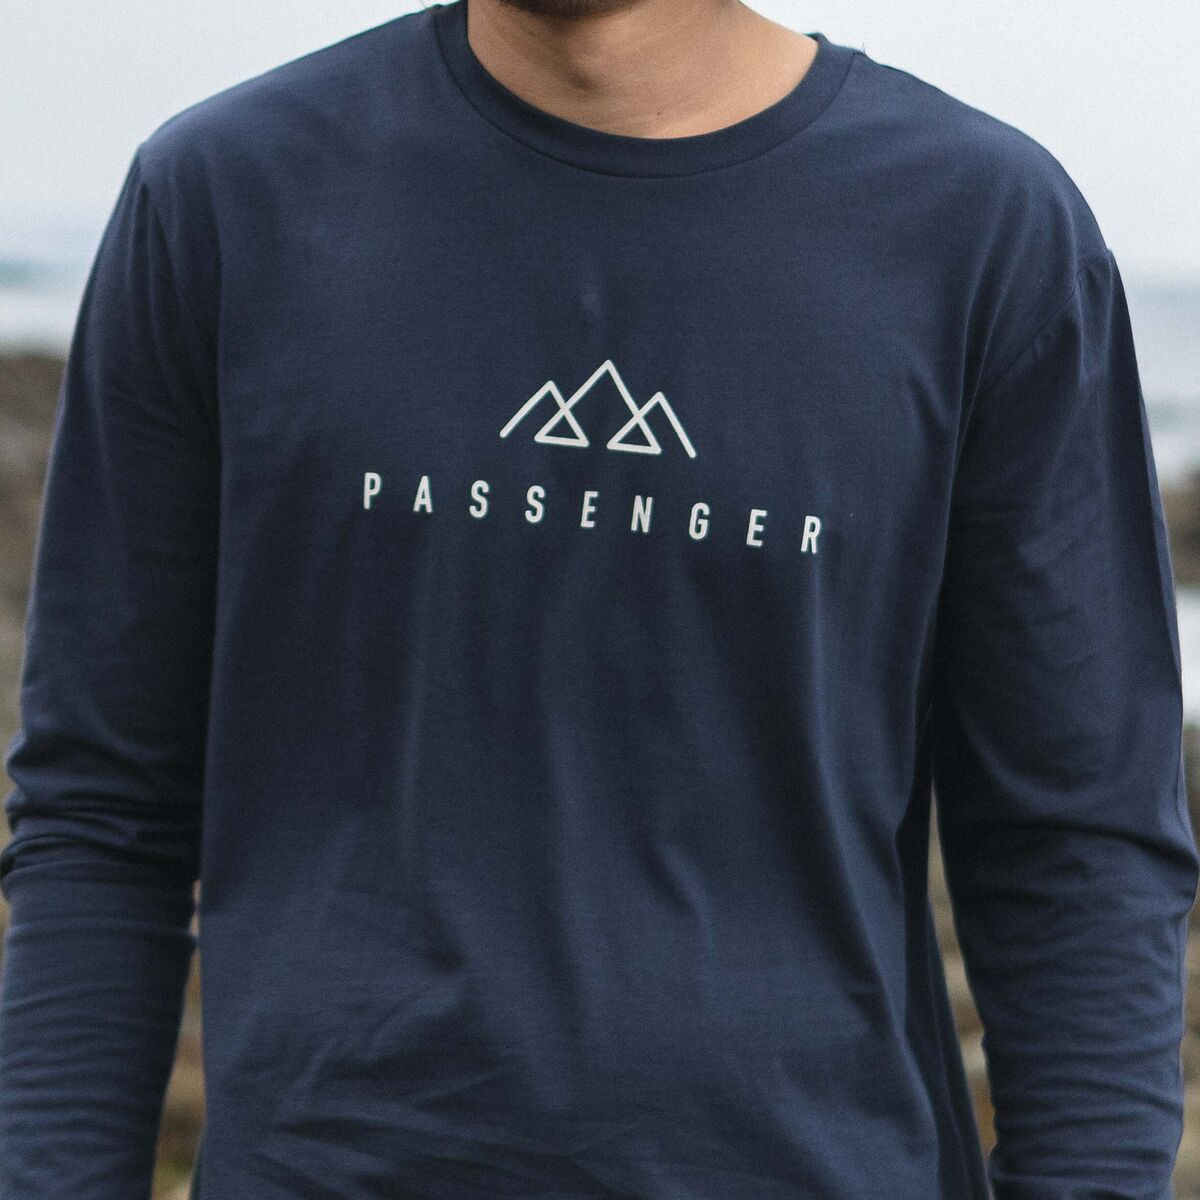 Hatchet  L/S T-Shirt - Navy image 2